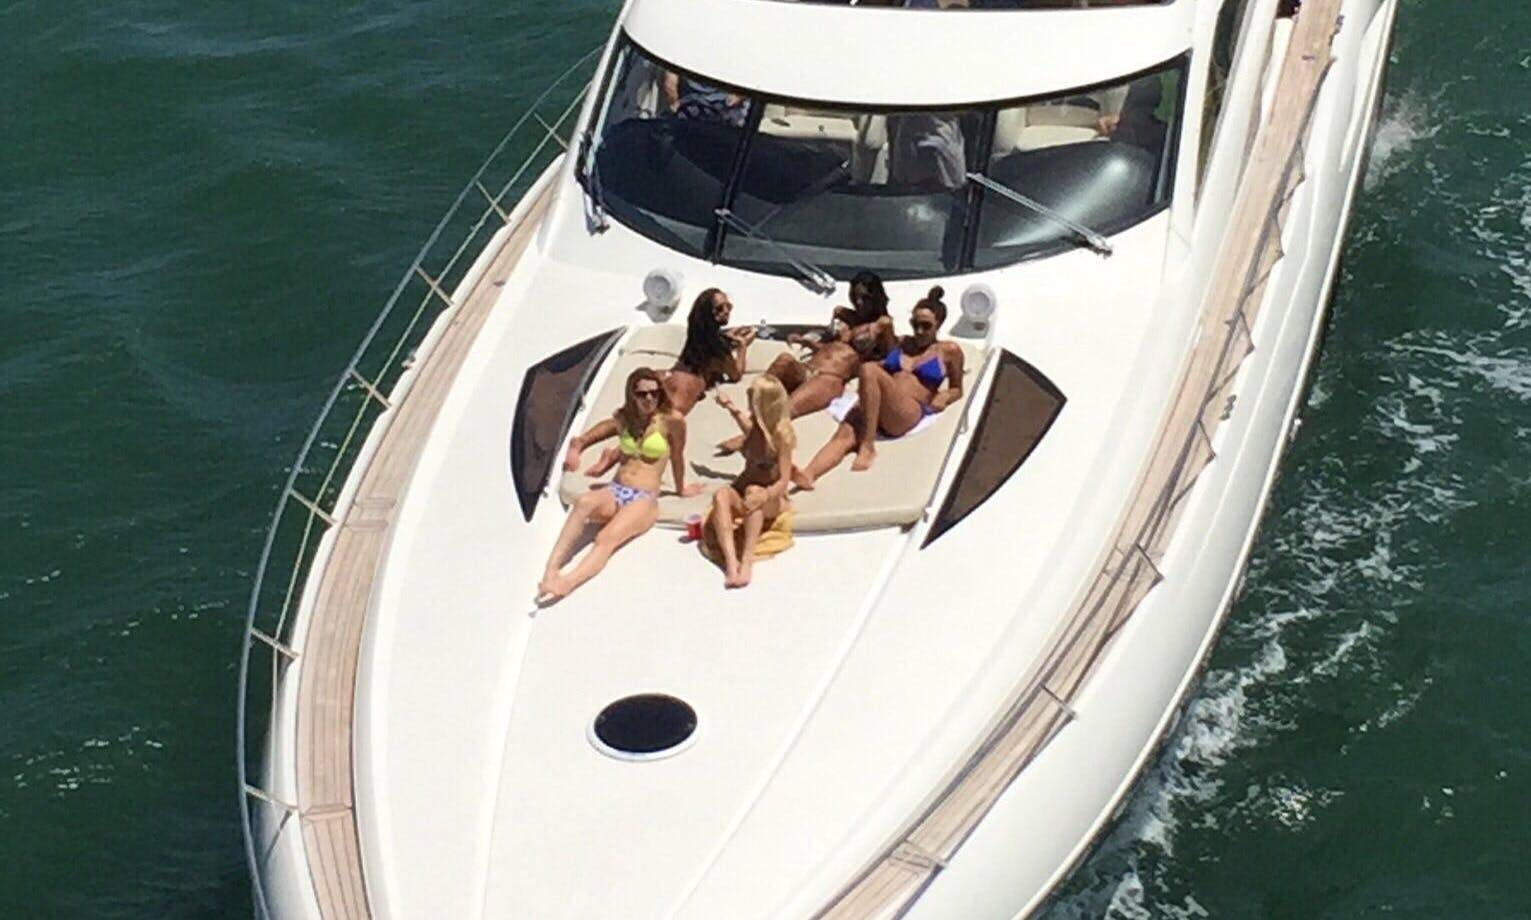 Captained Charter on 70' Exclusive Yacht in Miami Beach. Captain Included. 3 Bedrooms